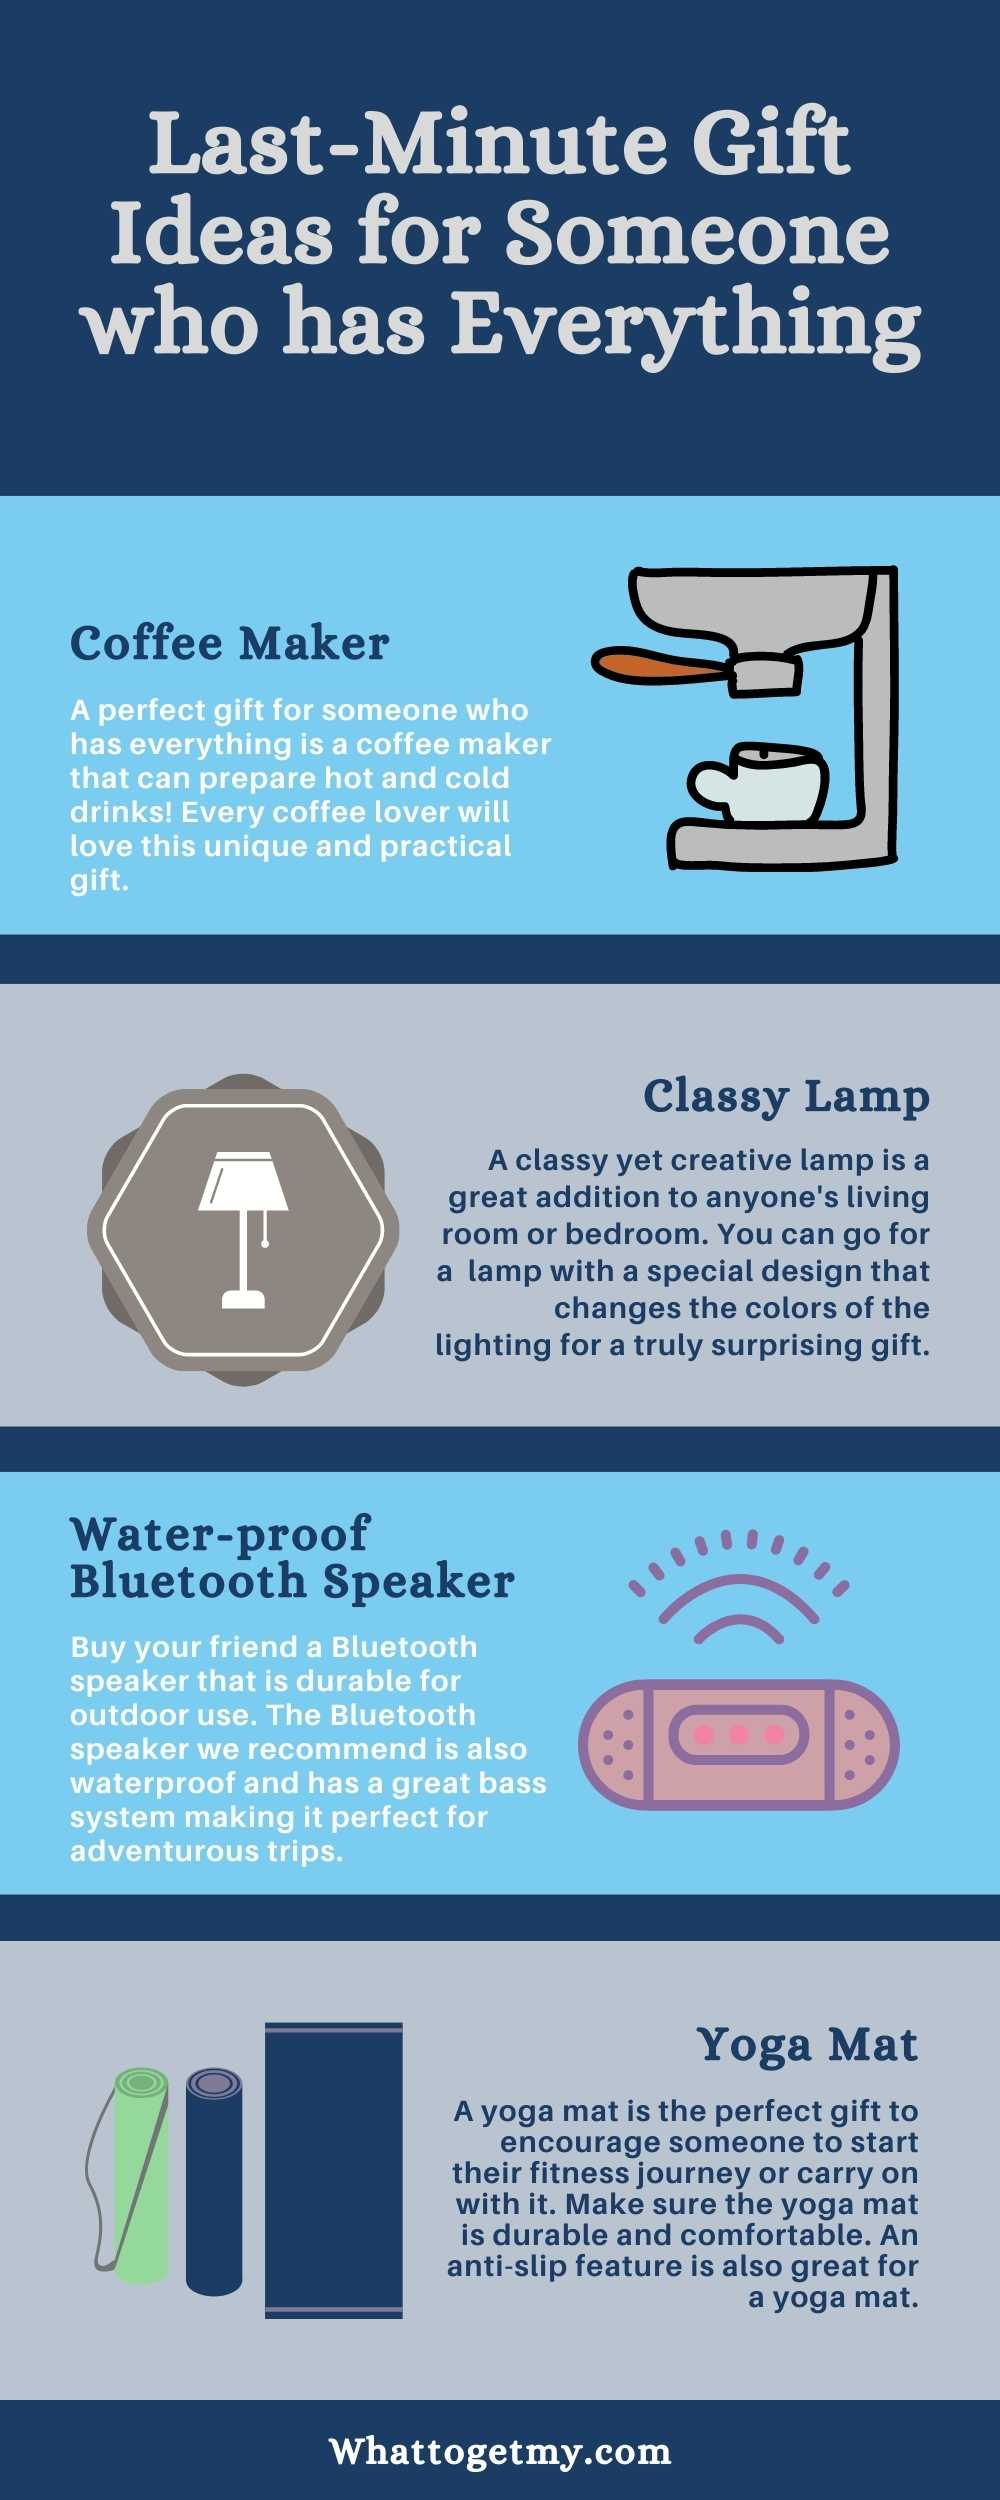 Last minute gift ideas for someone who has everything